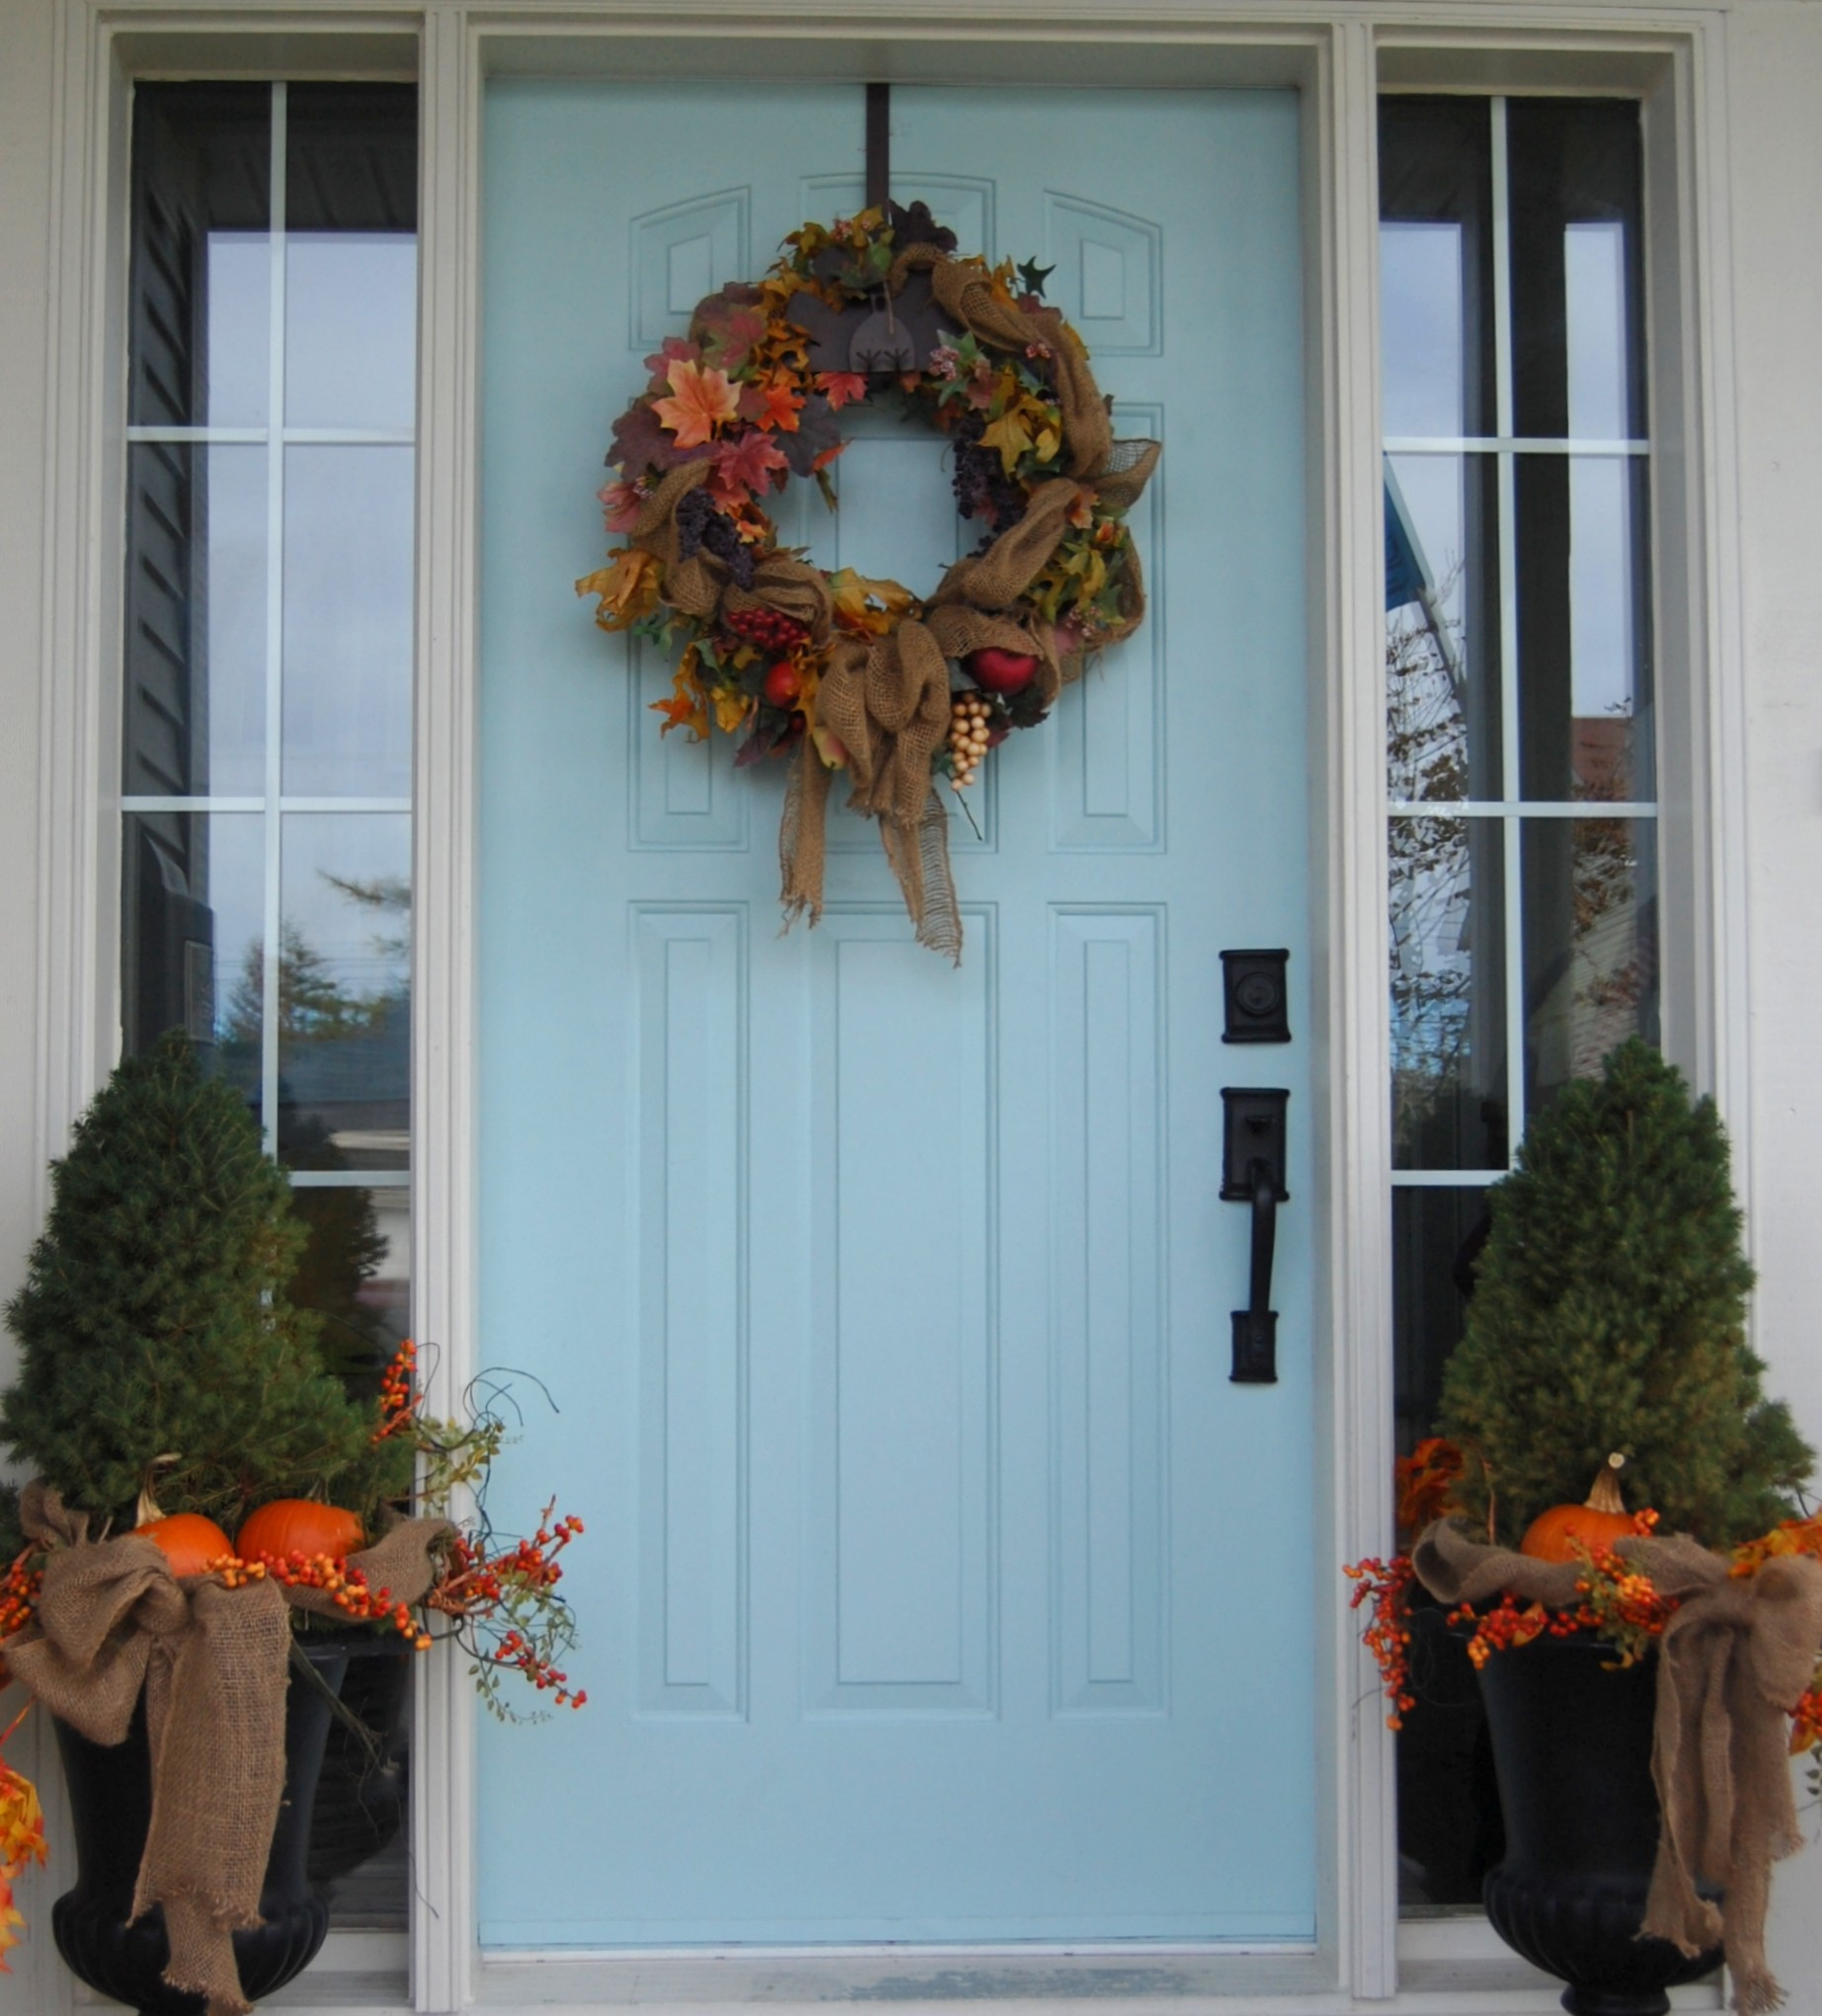 My Two Tries at Fall Door Decor (Fall Wreaths) - A Pop of Pretty Blog  (Canadian Home Decorating Blog - St. John's, Canada)